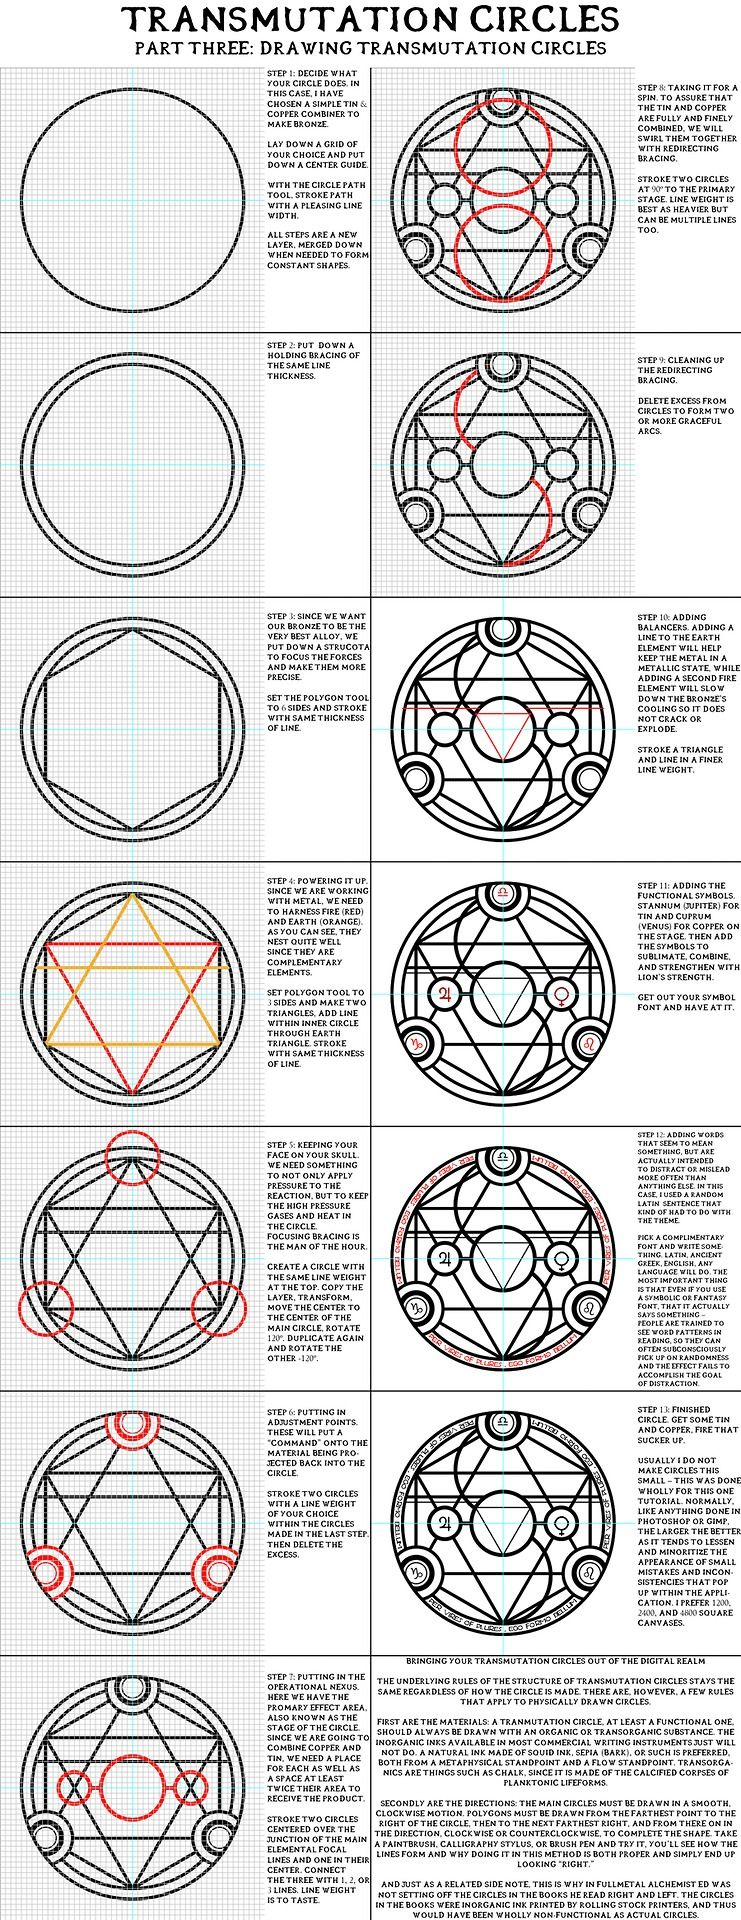 Transmutation Circles Fullmetal Alchemist Just Pinning This Cus